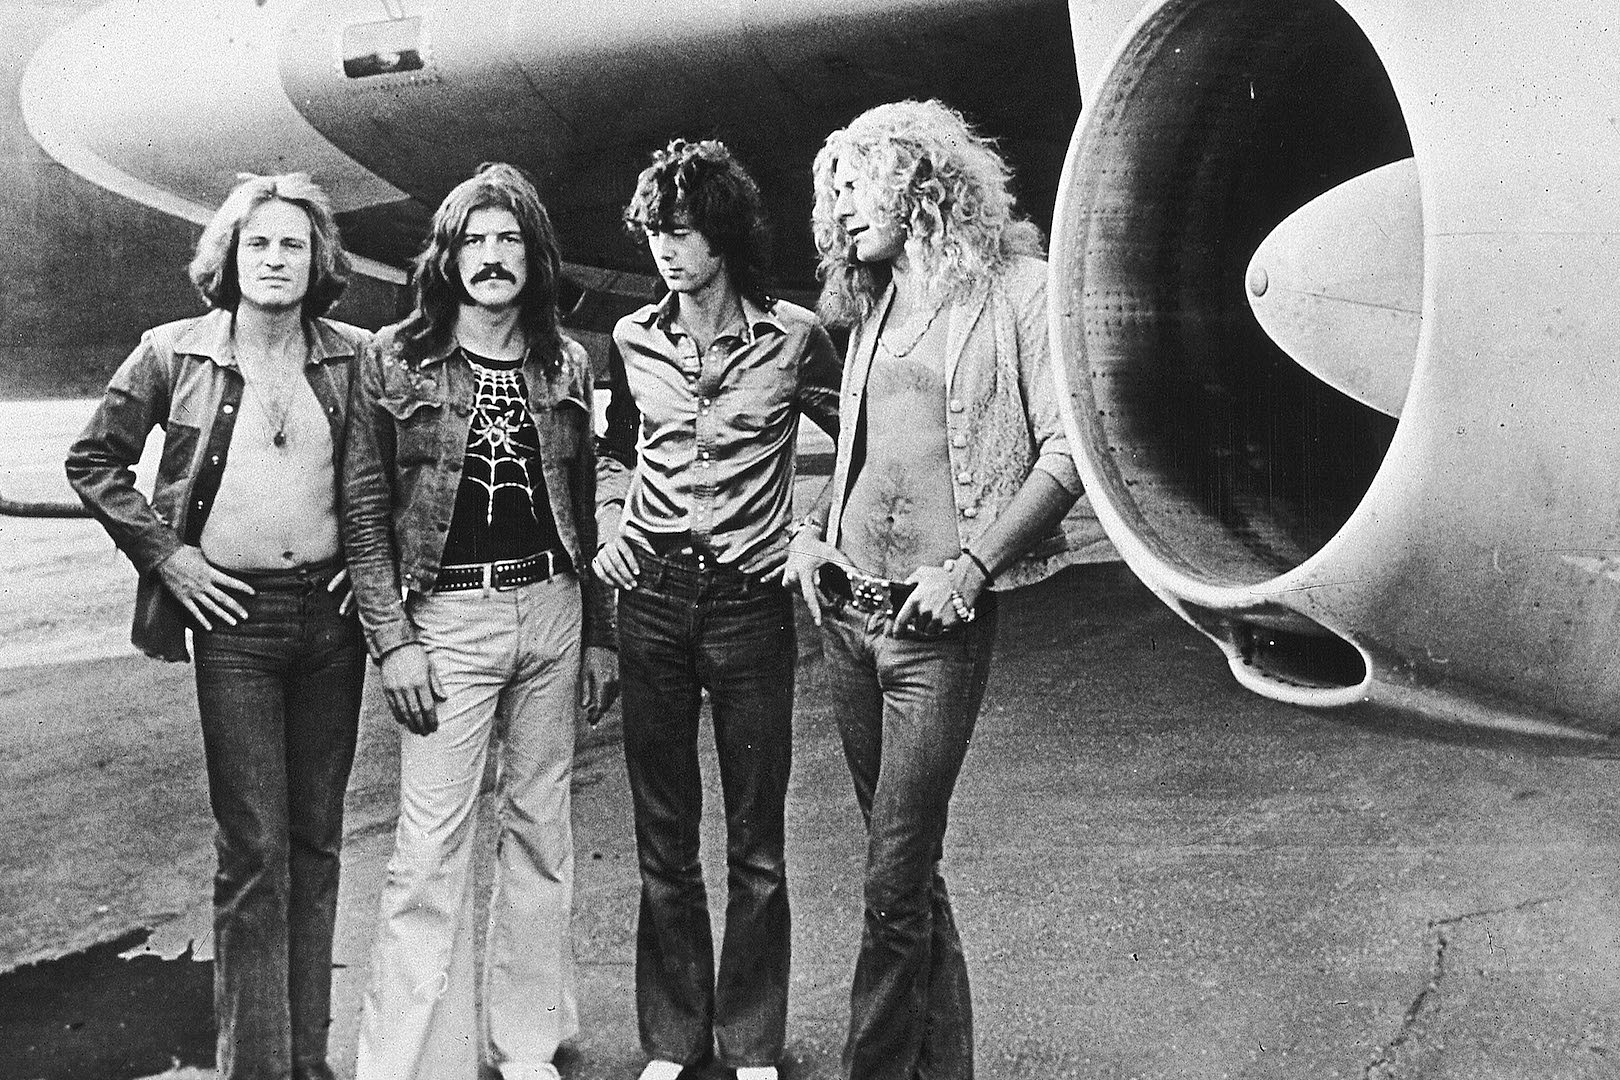 Led Zeppelin May Be Preparing to Stream Archival Concerts